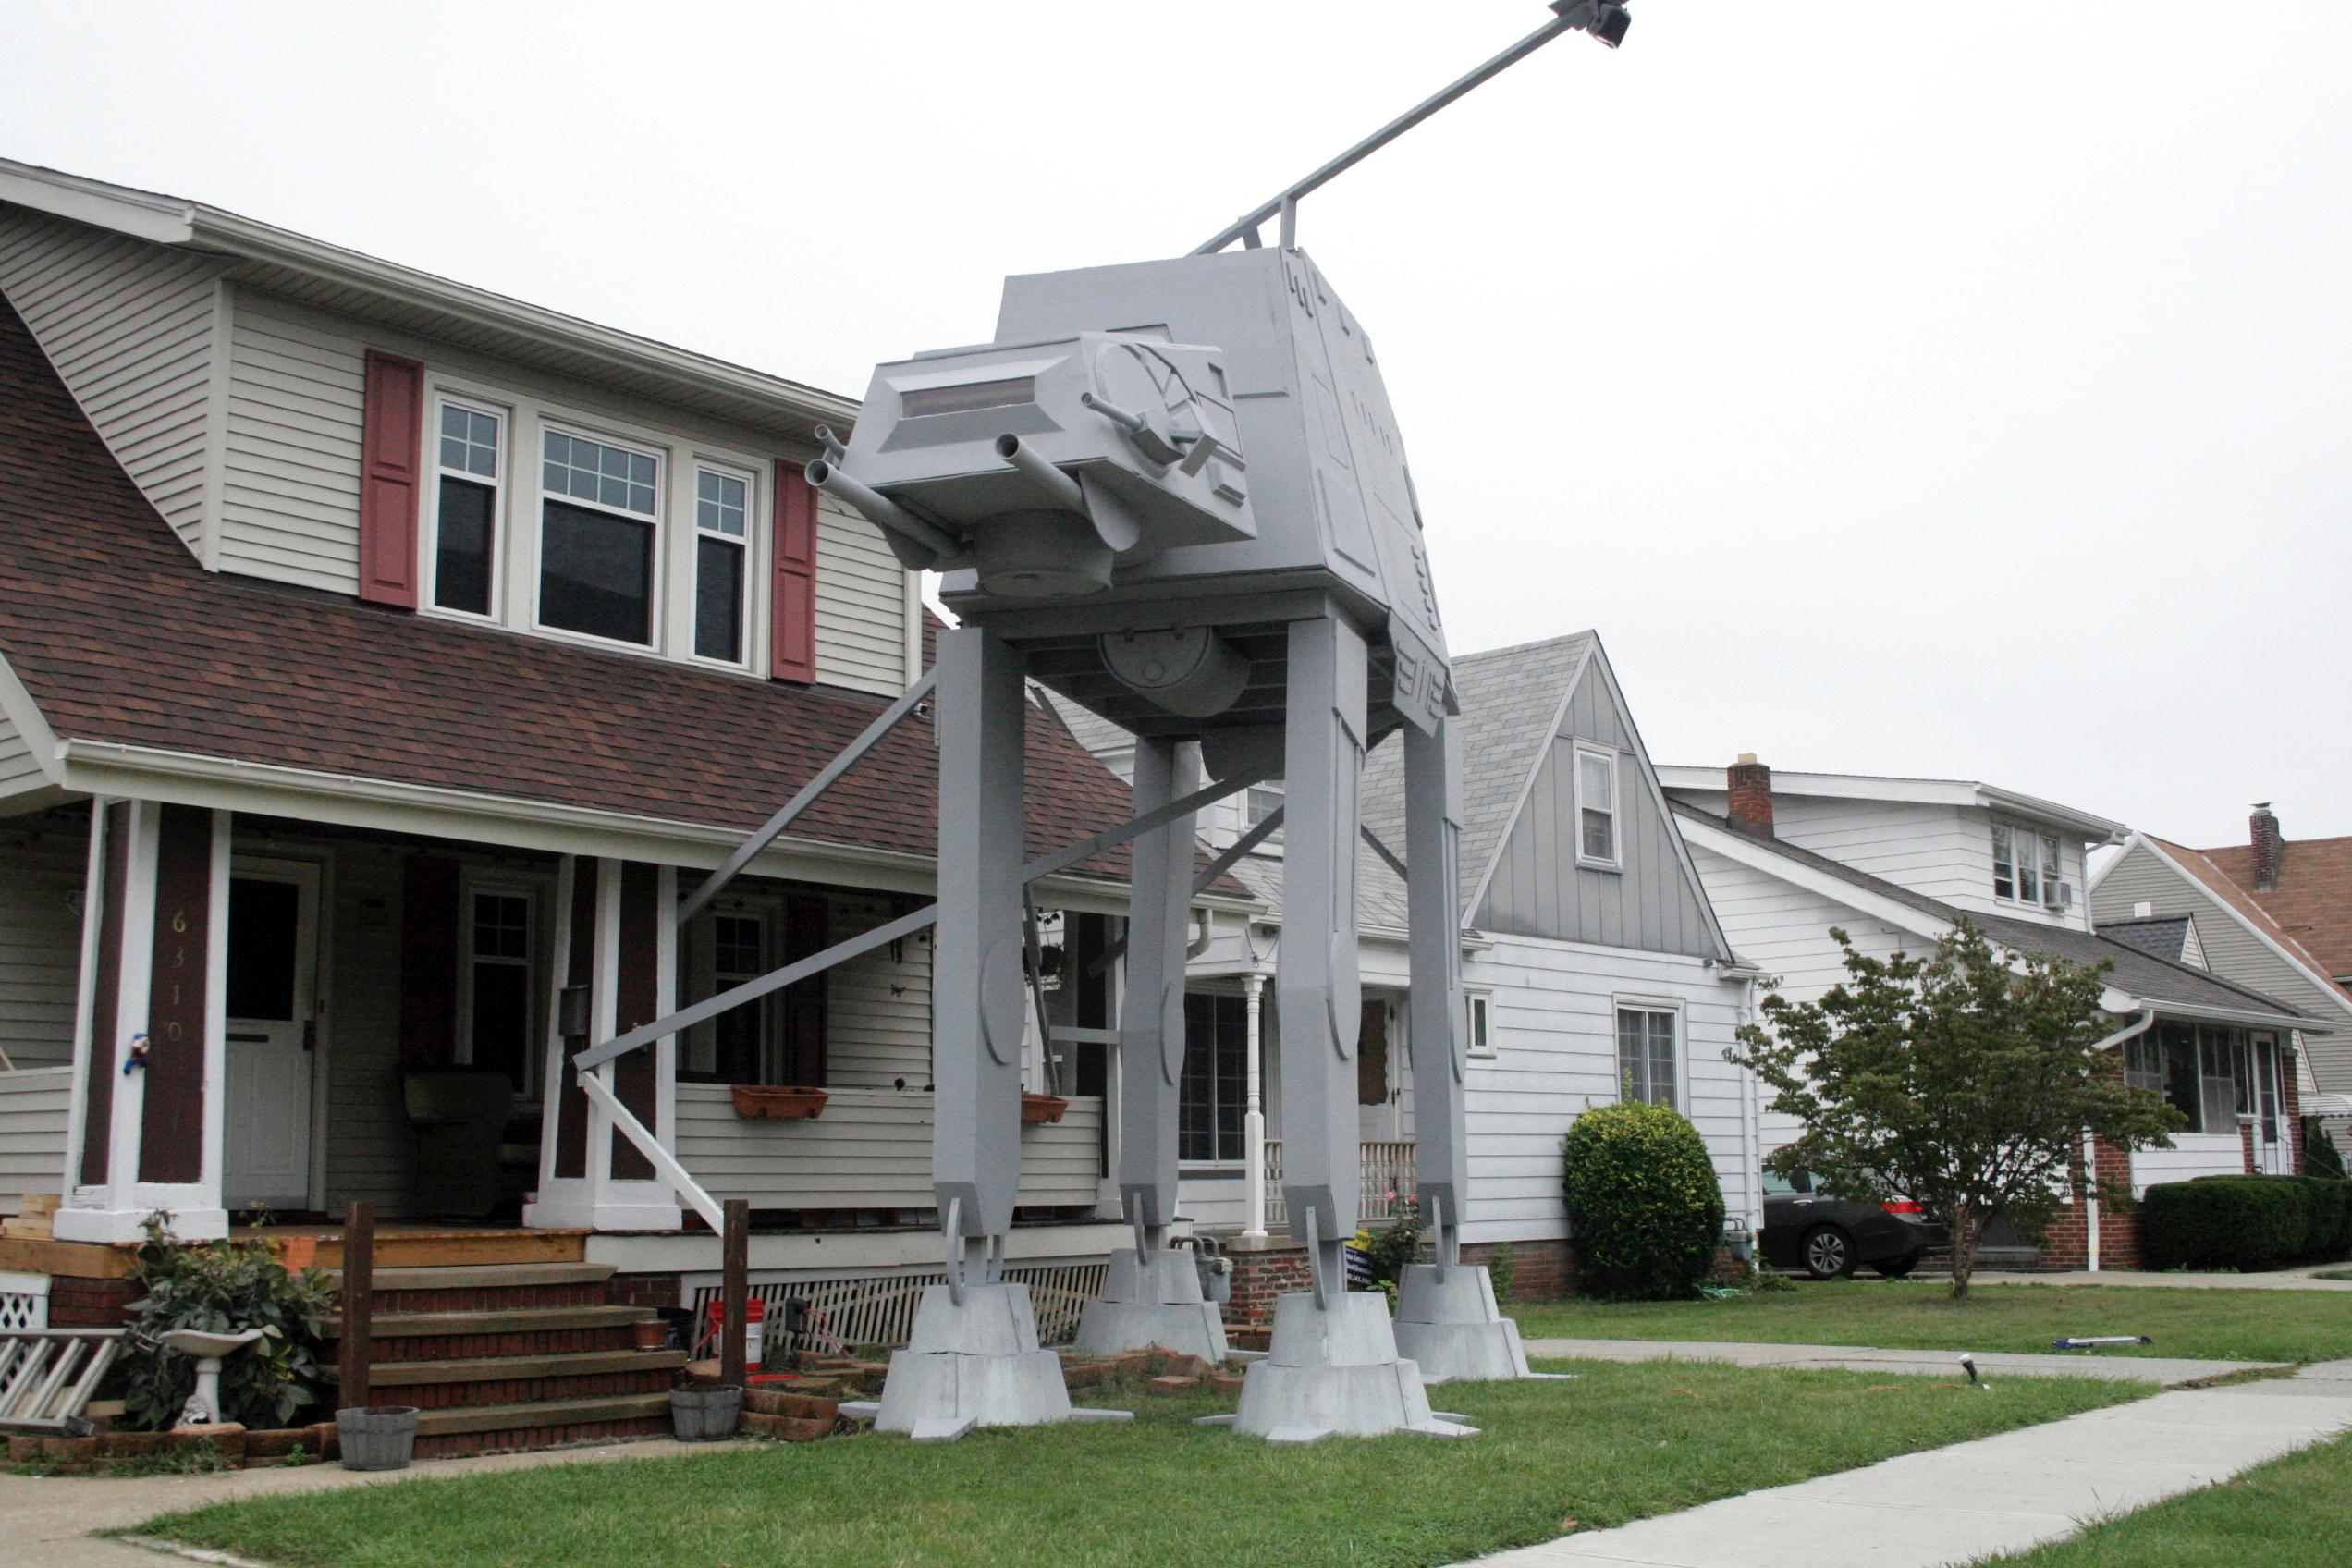 Ohio man builds 2-story 'Star Wars' vehicle replica for Halloween (Patrick Cooley/The Plain Dealer-Cleveland.com via AP)